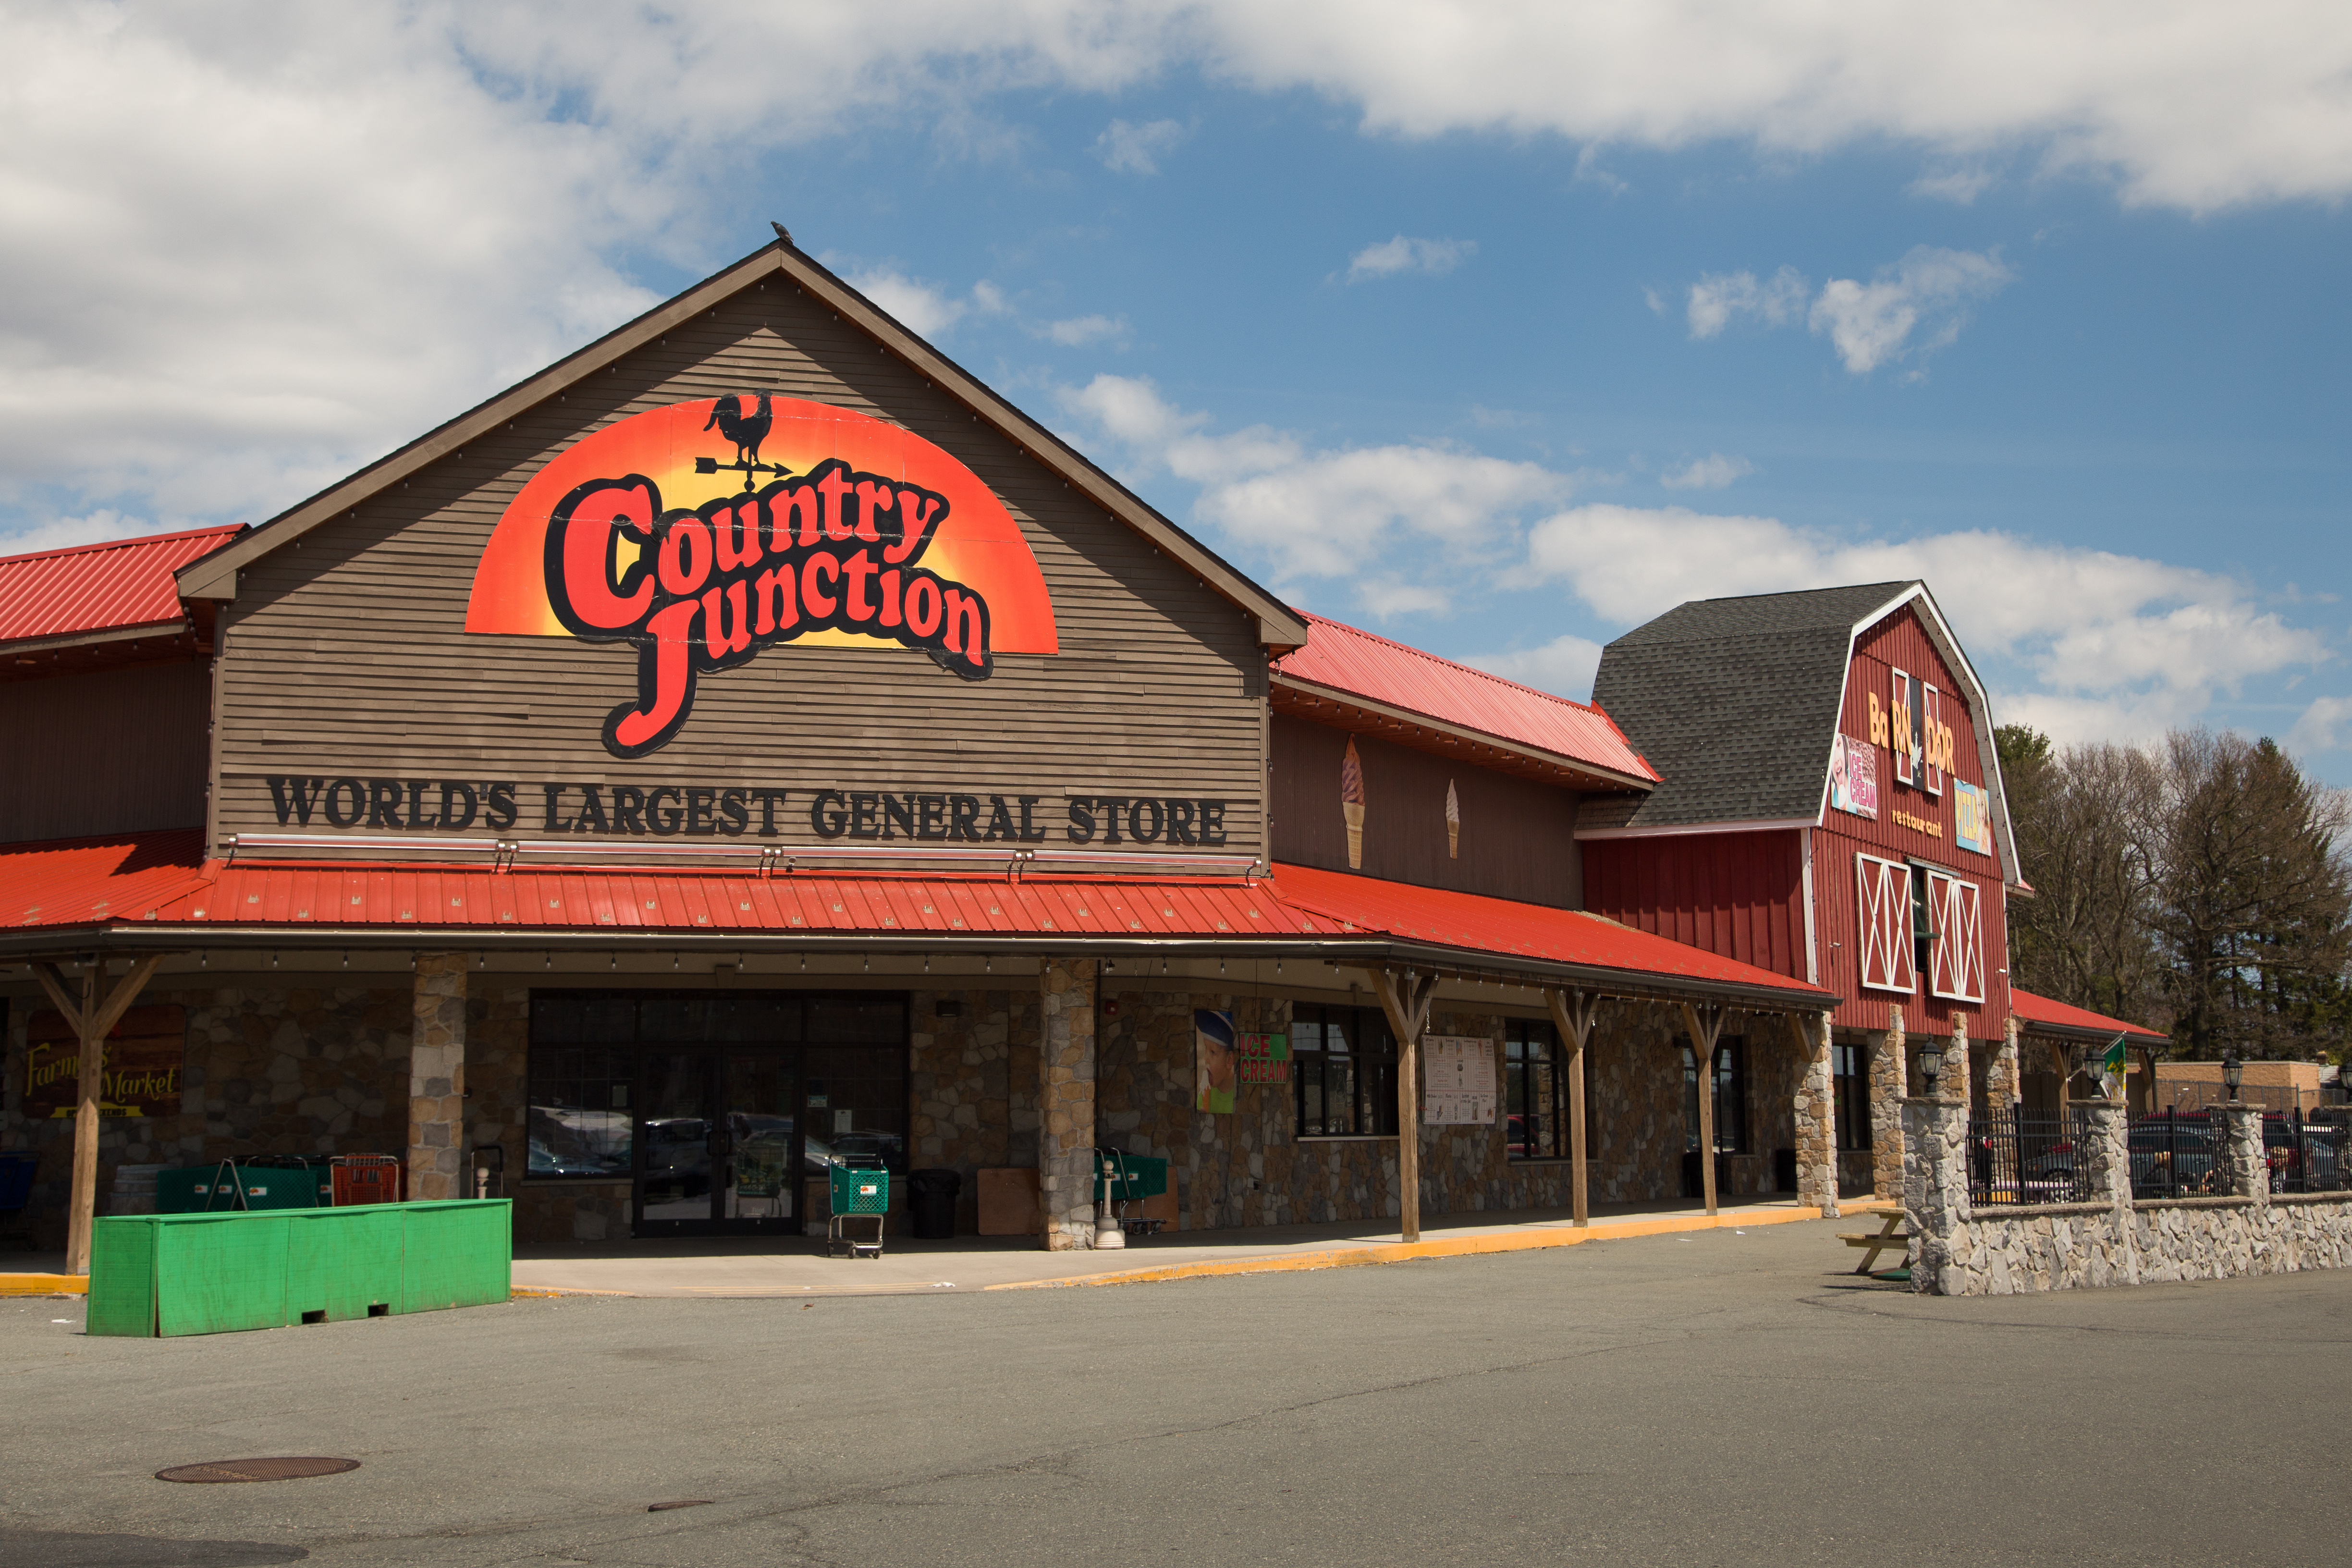 country junction world's largest general store | lehighton, pa 18235